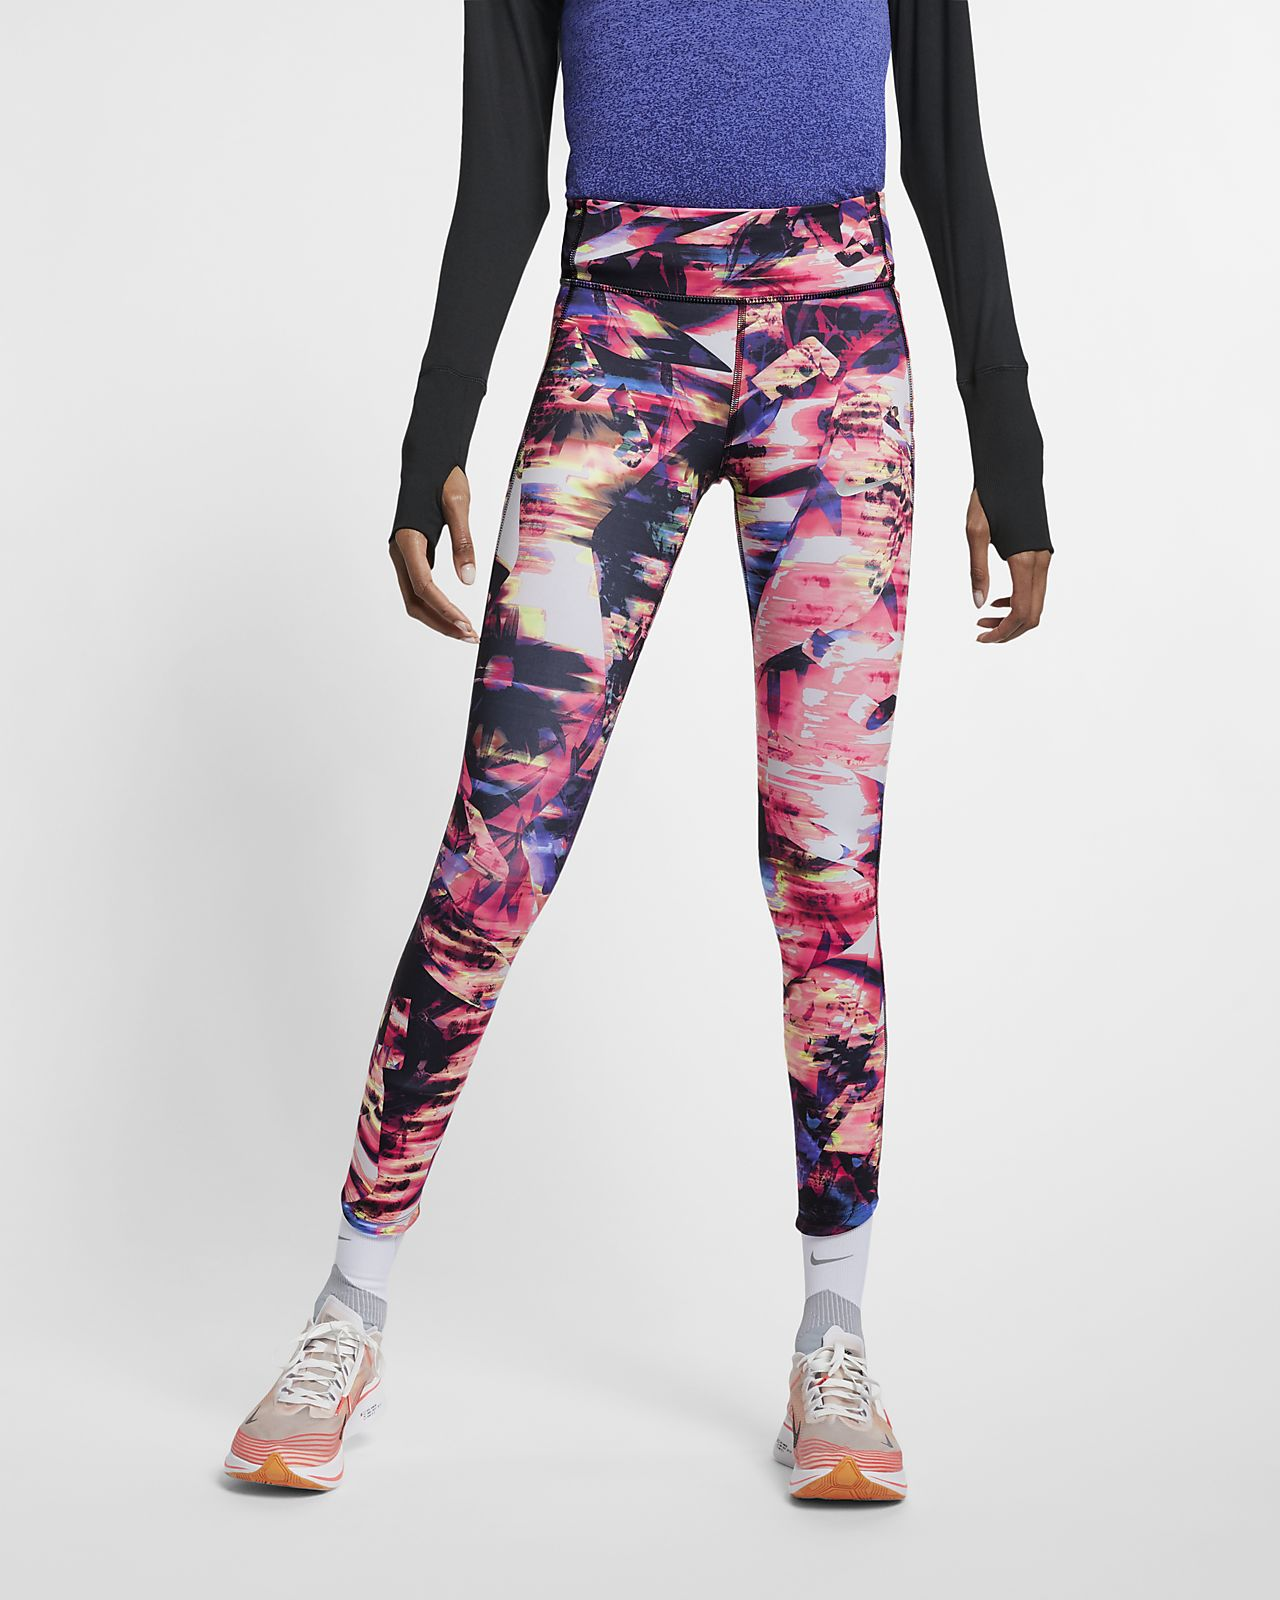 newest a94e7 5aee3 Nike Epic Lux Women s Printed Running Tights. Nike.com GB